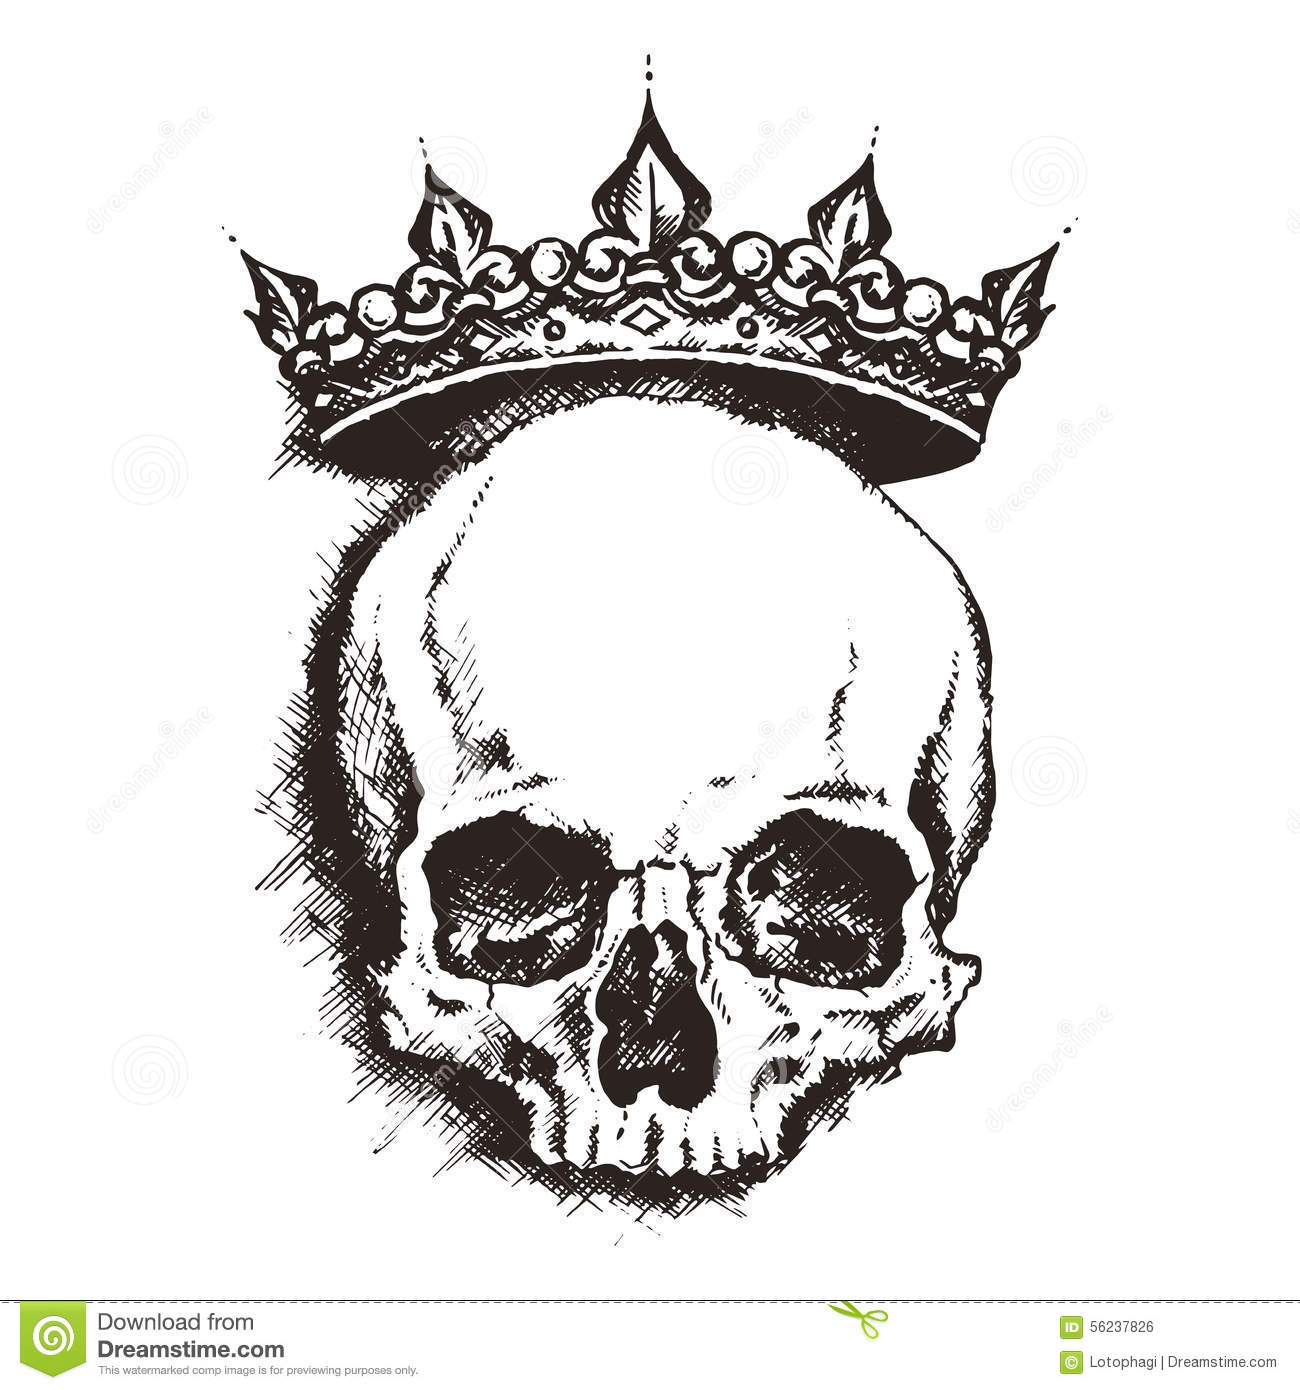 Line Art Poster Design : Skull engraving style vector illustration stock